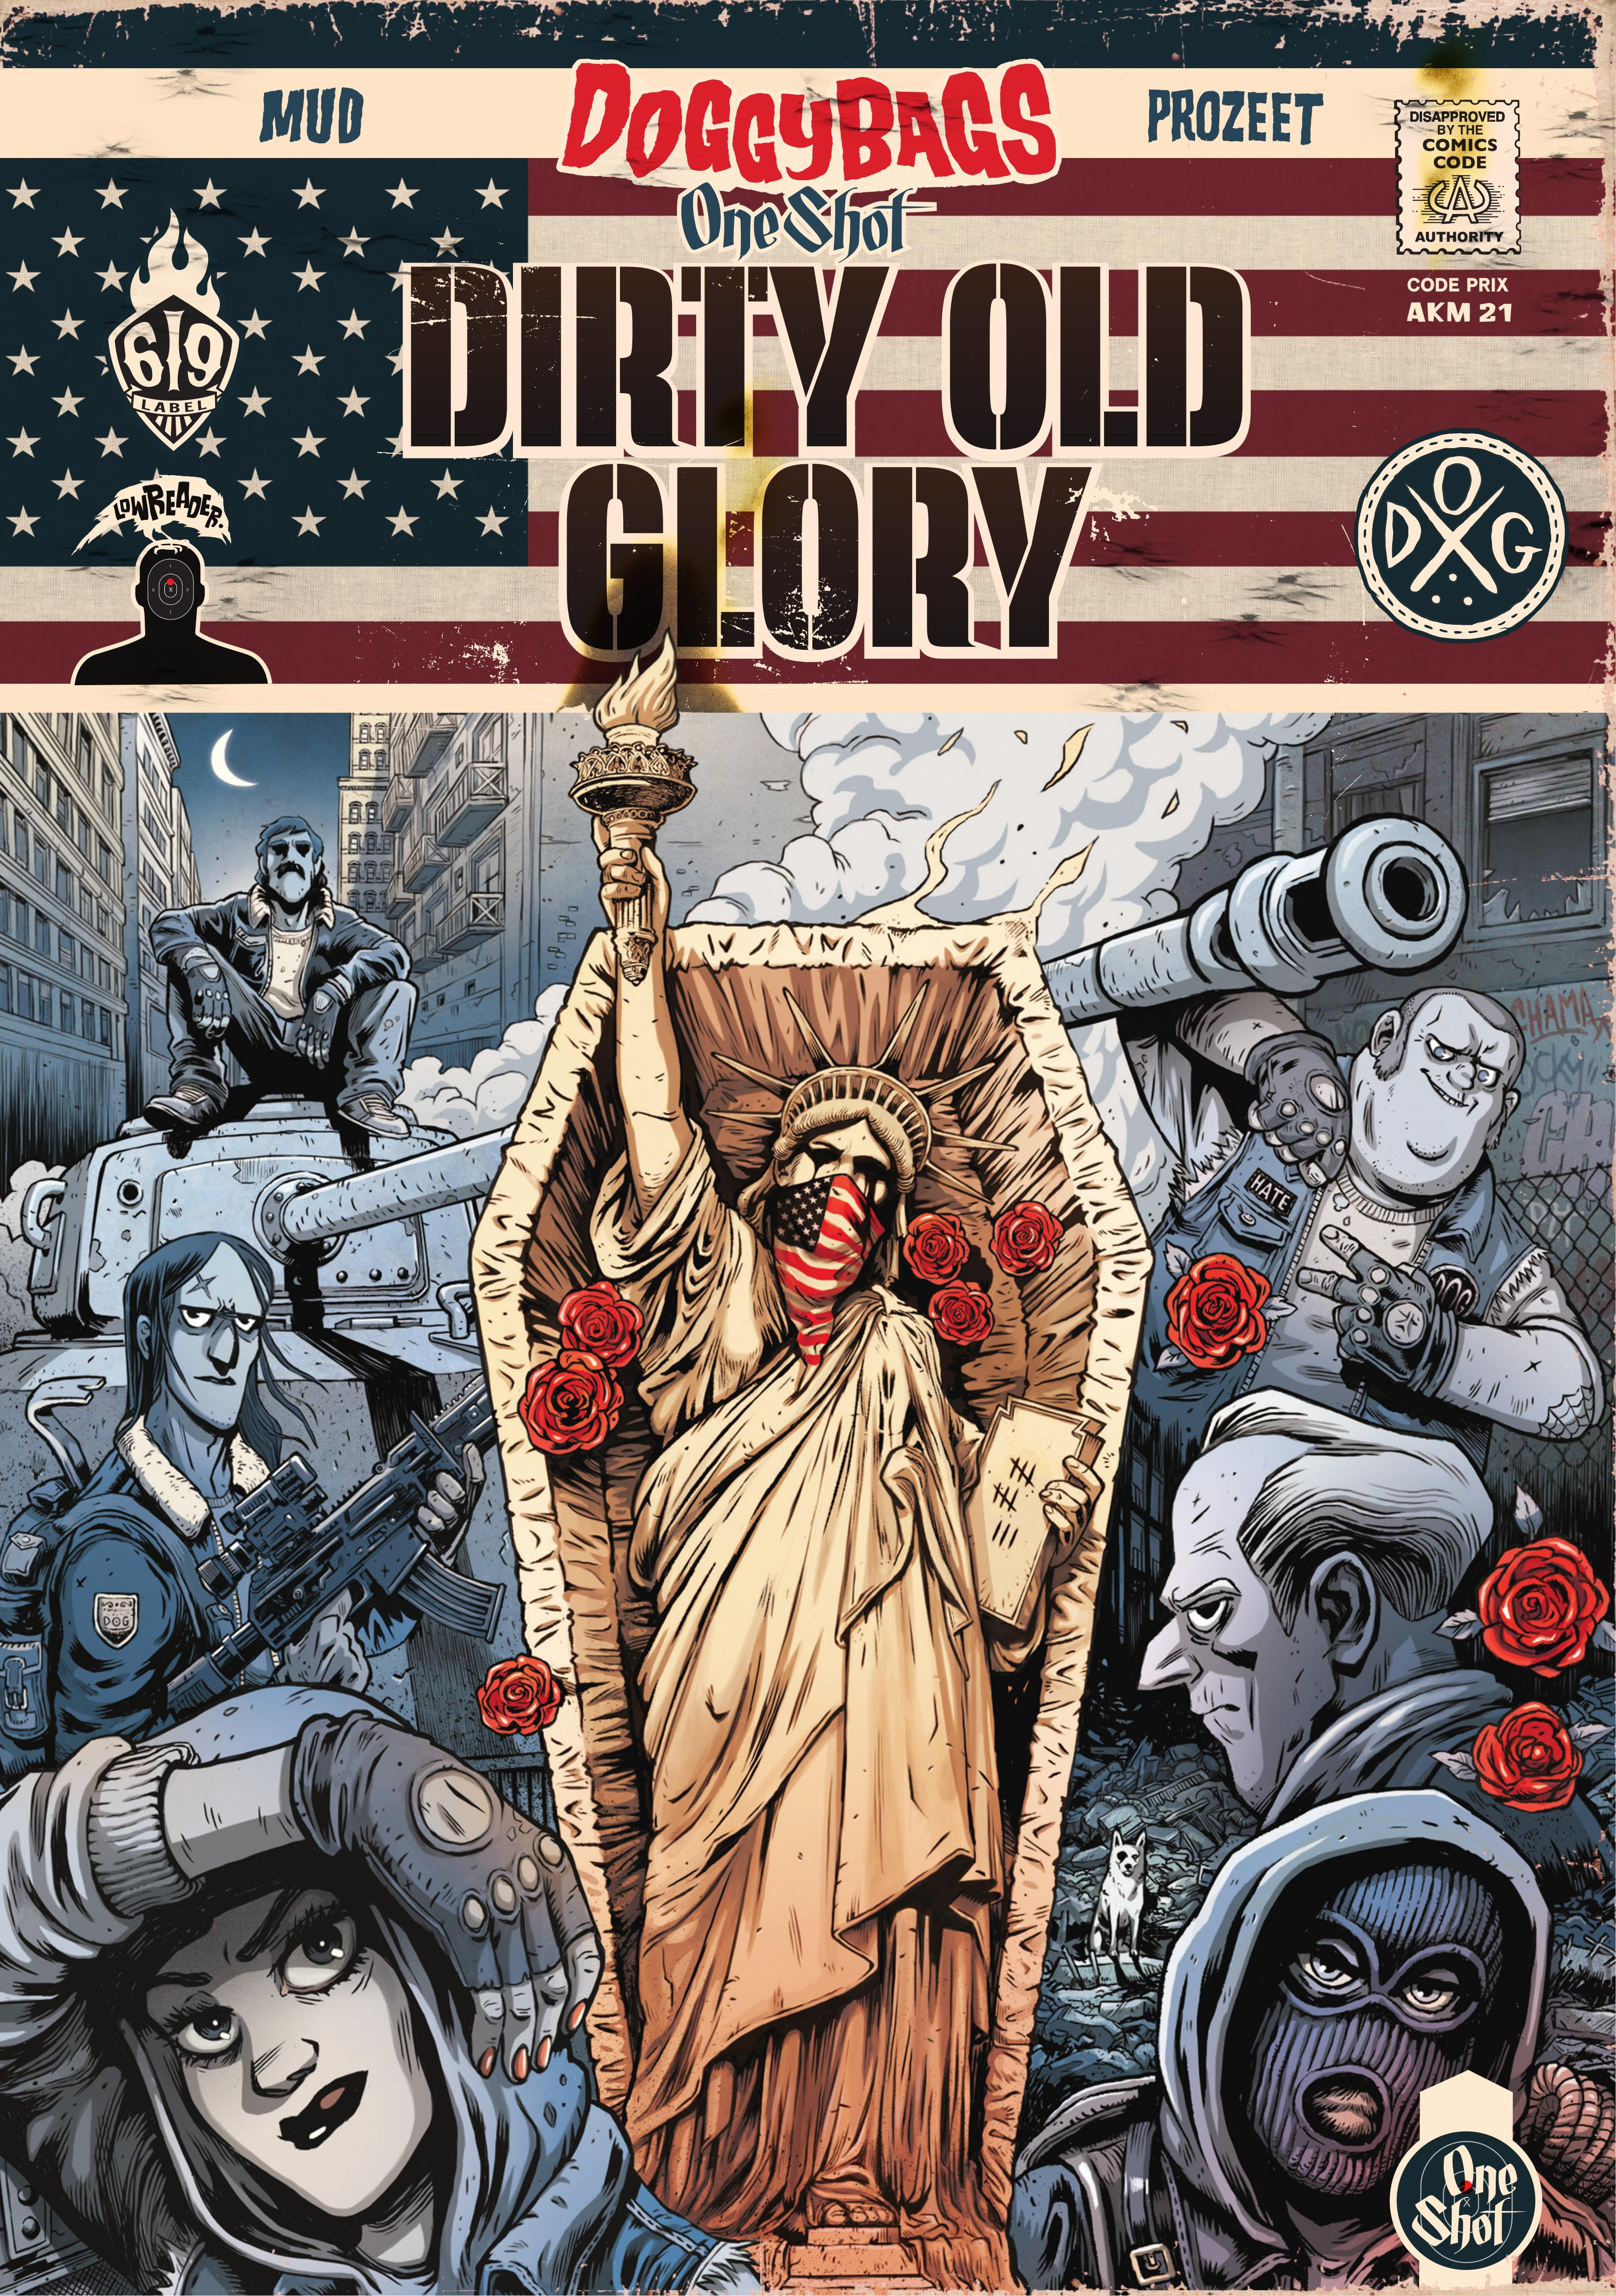 Doggybags One-Shot 4 - Dirty Old Glory